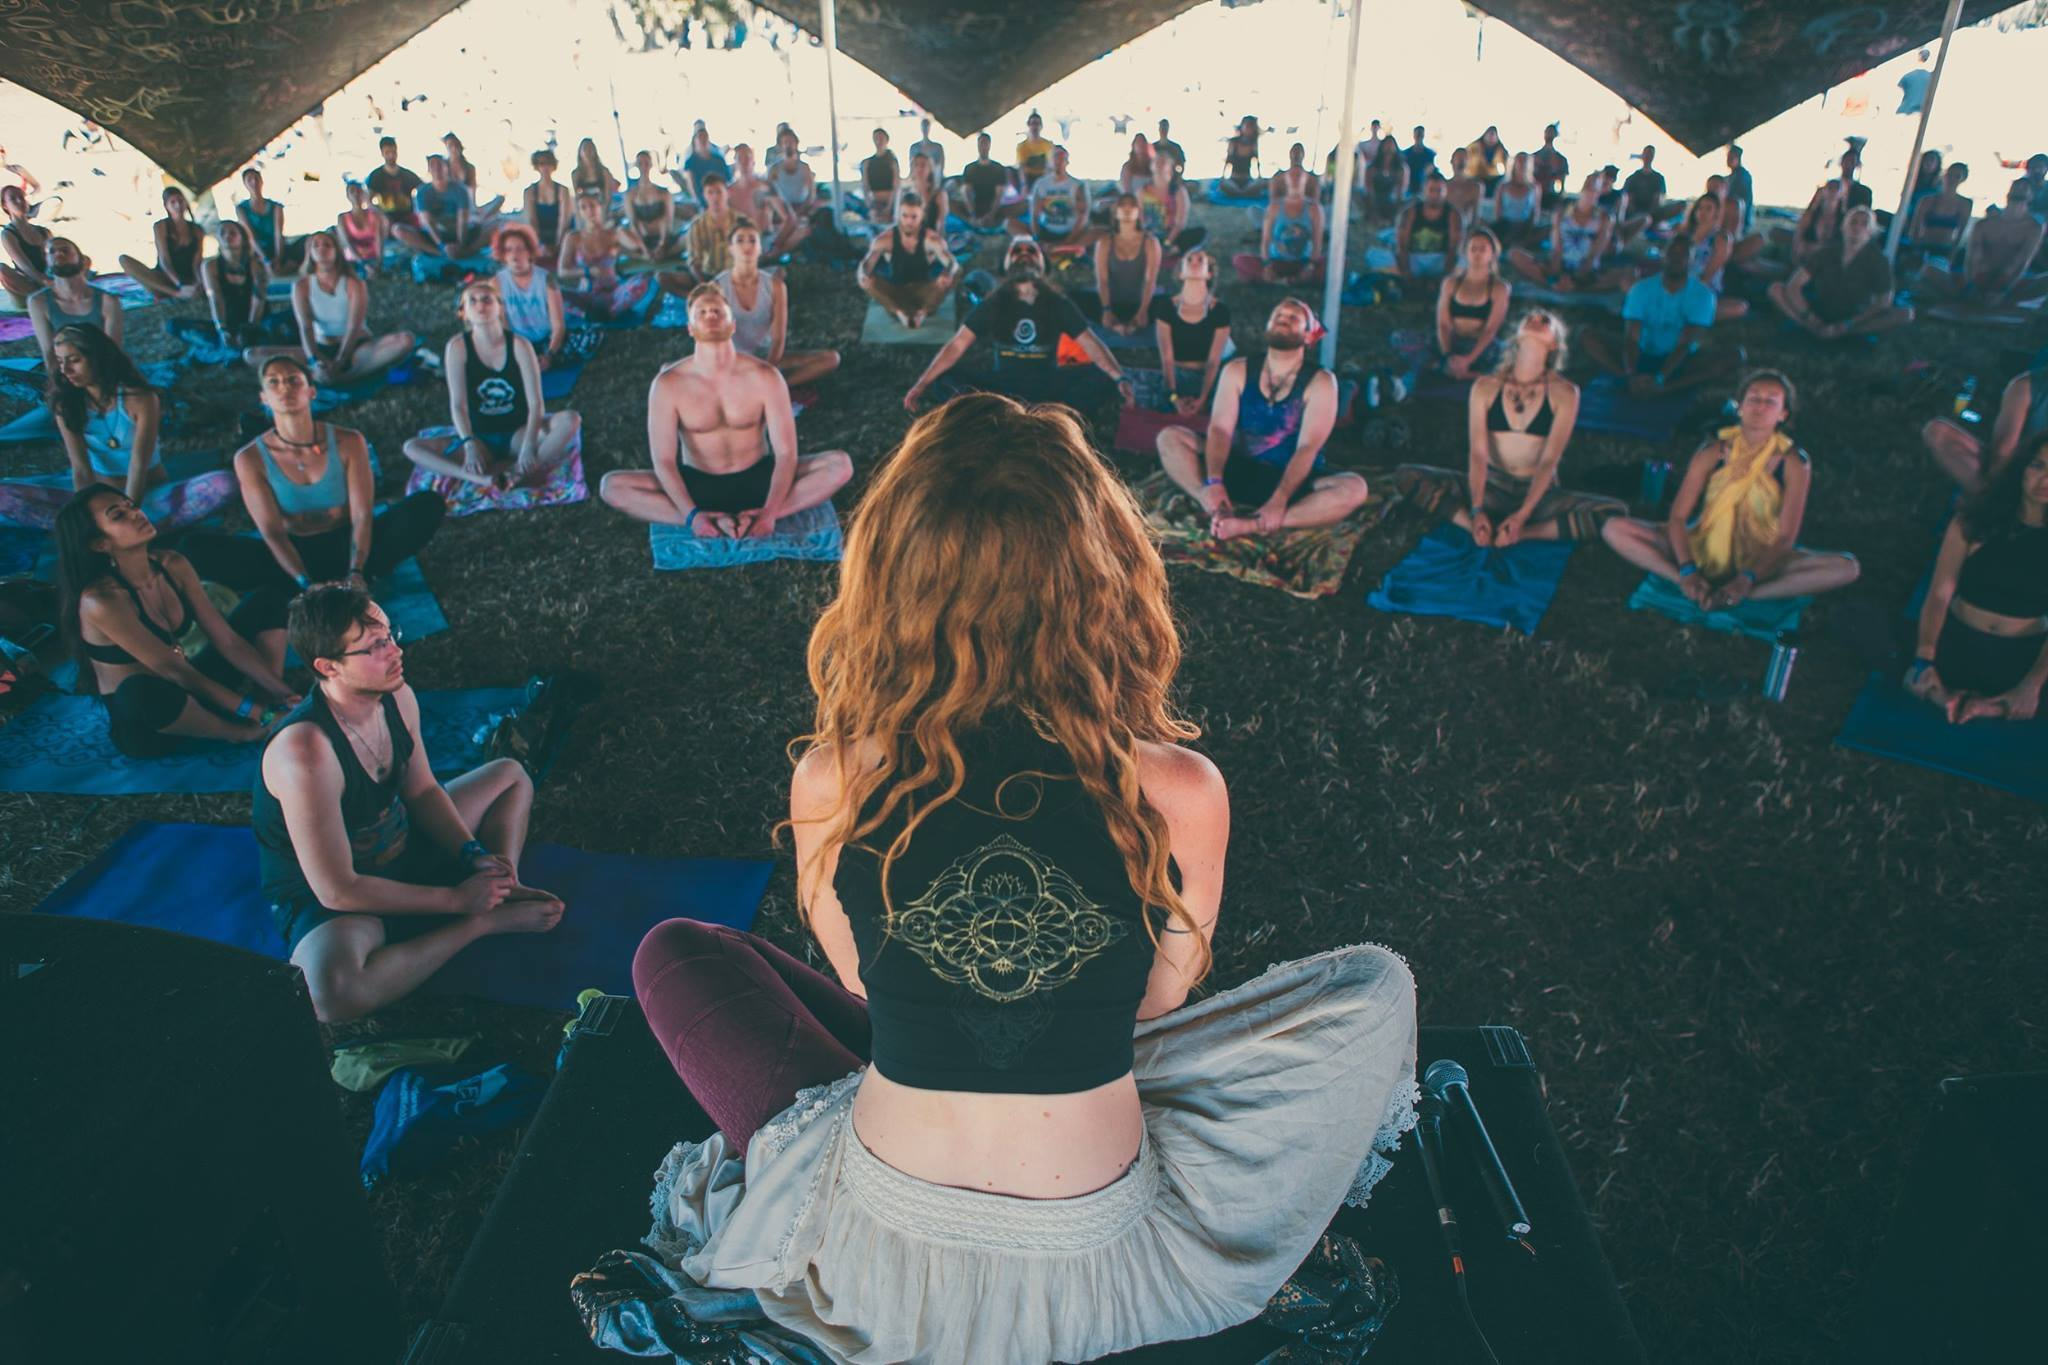 Okeechobee yoga instructor leads festival attendees in a group meditation